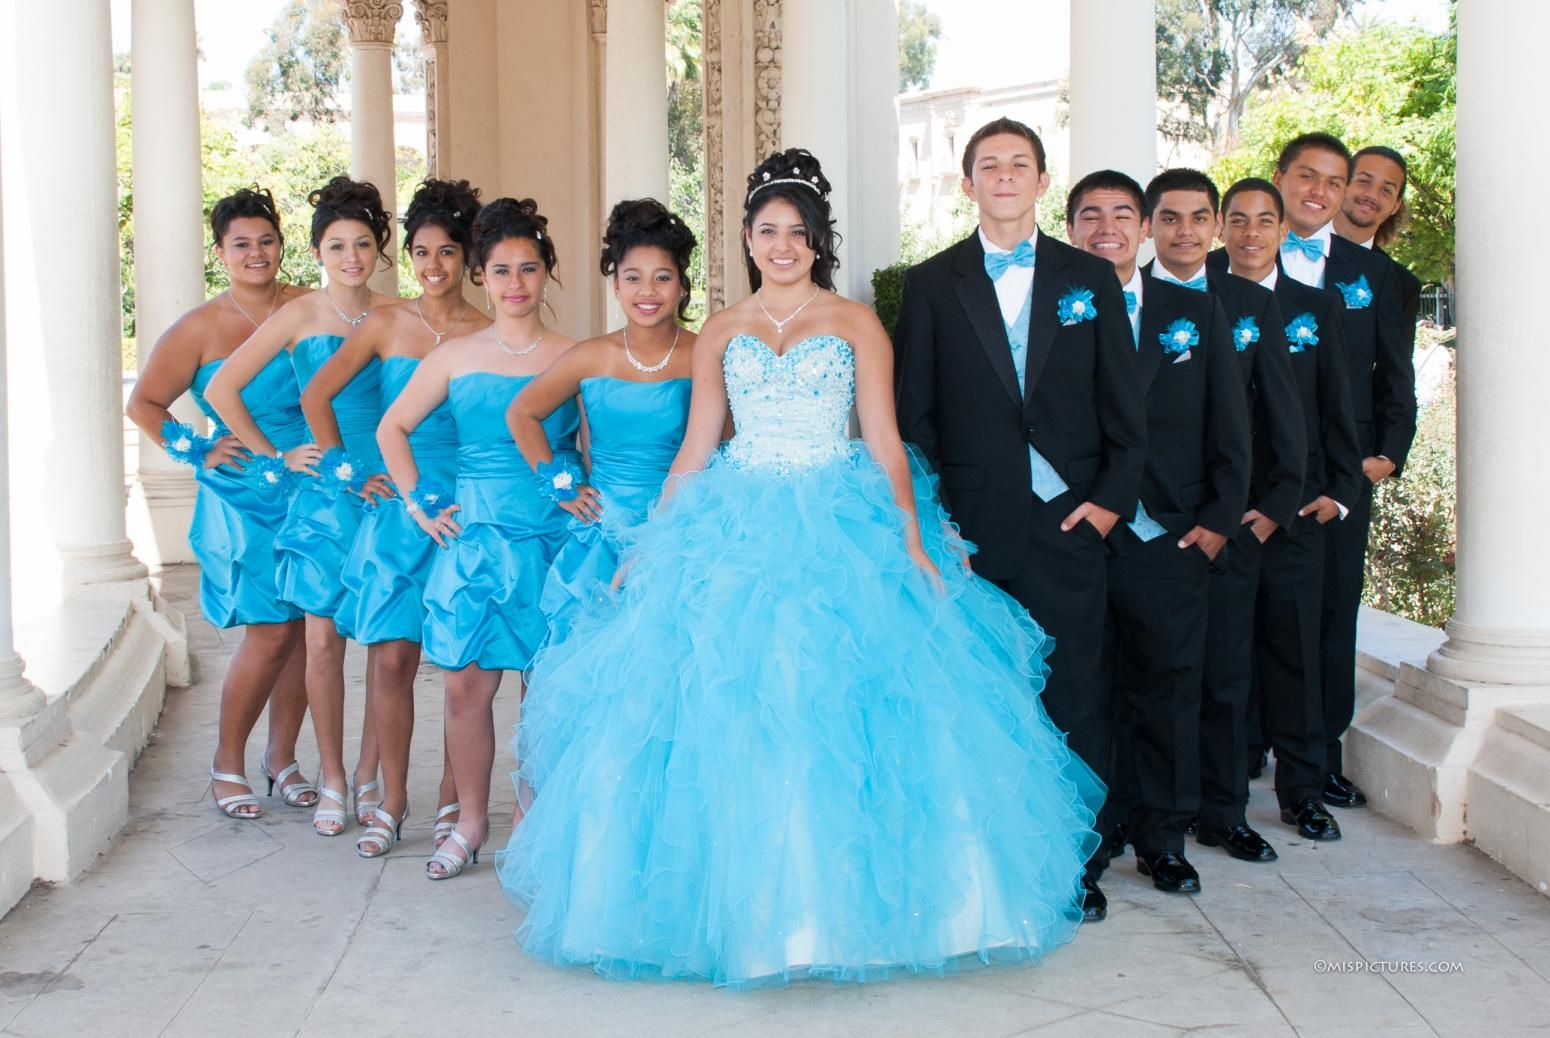 1000+ images about Jasmines Quinceanera on Pinterest